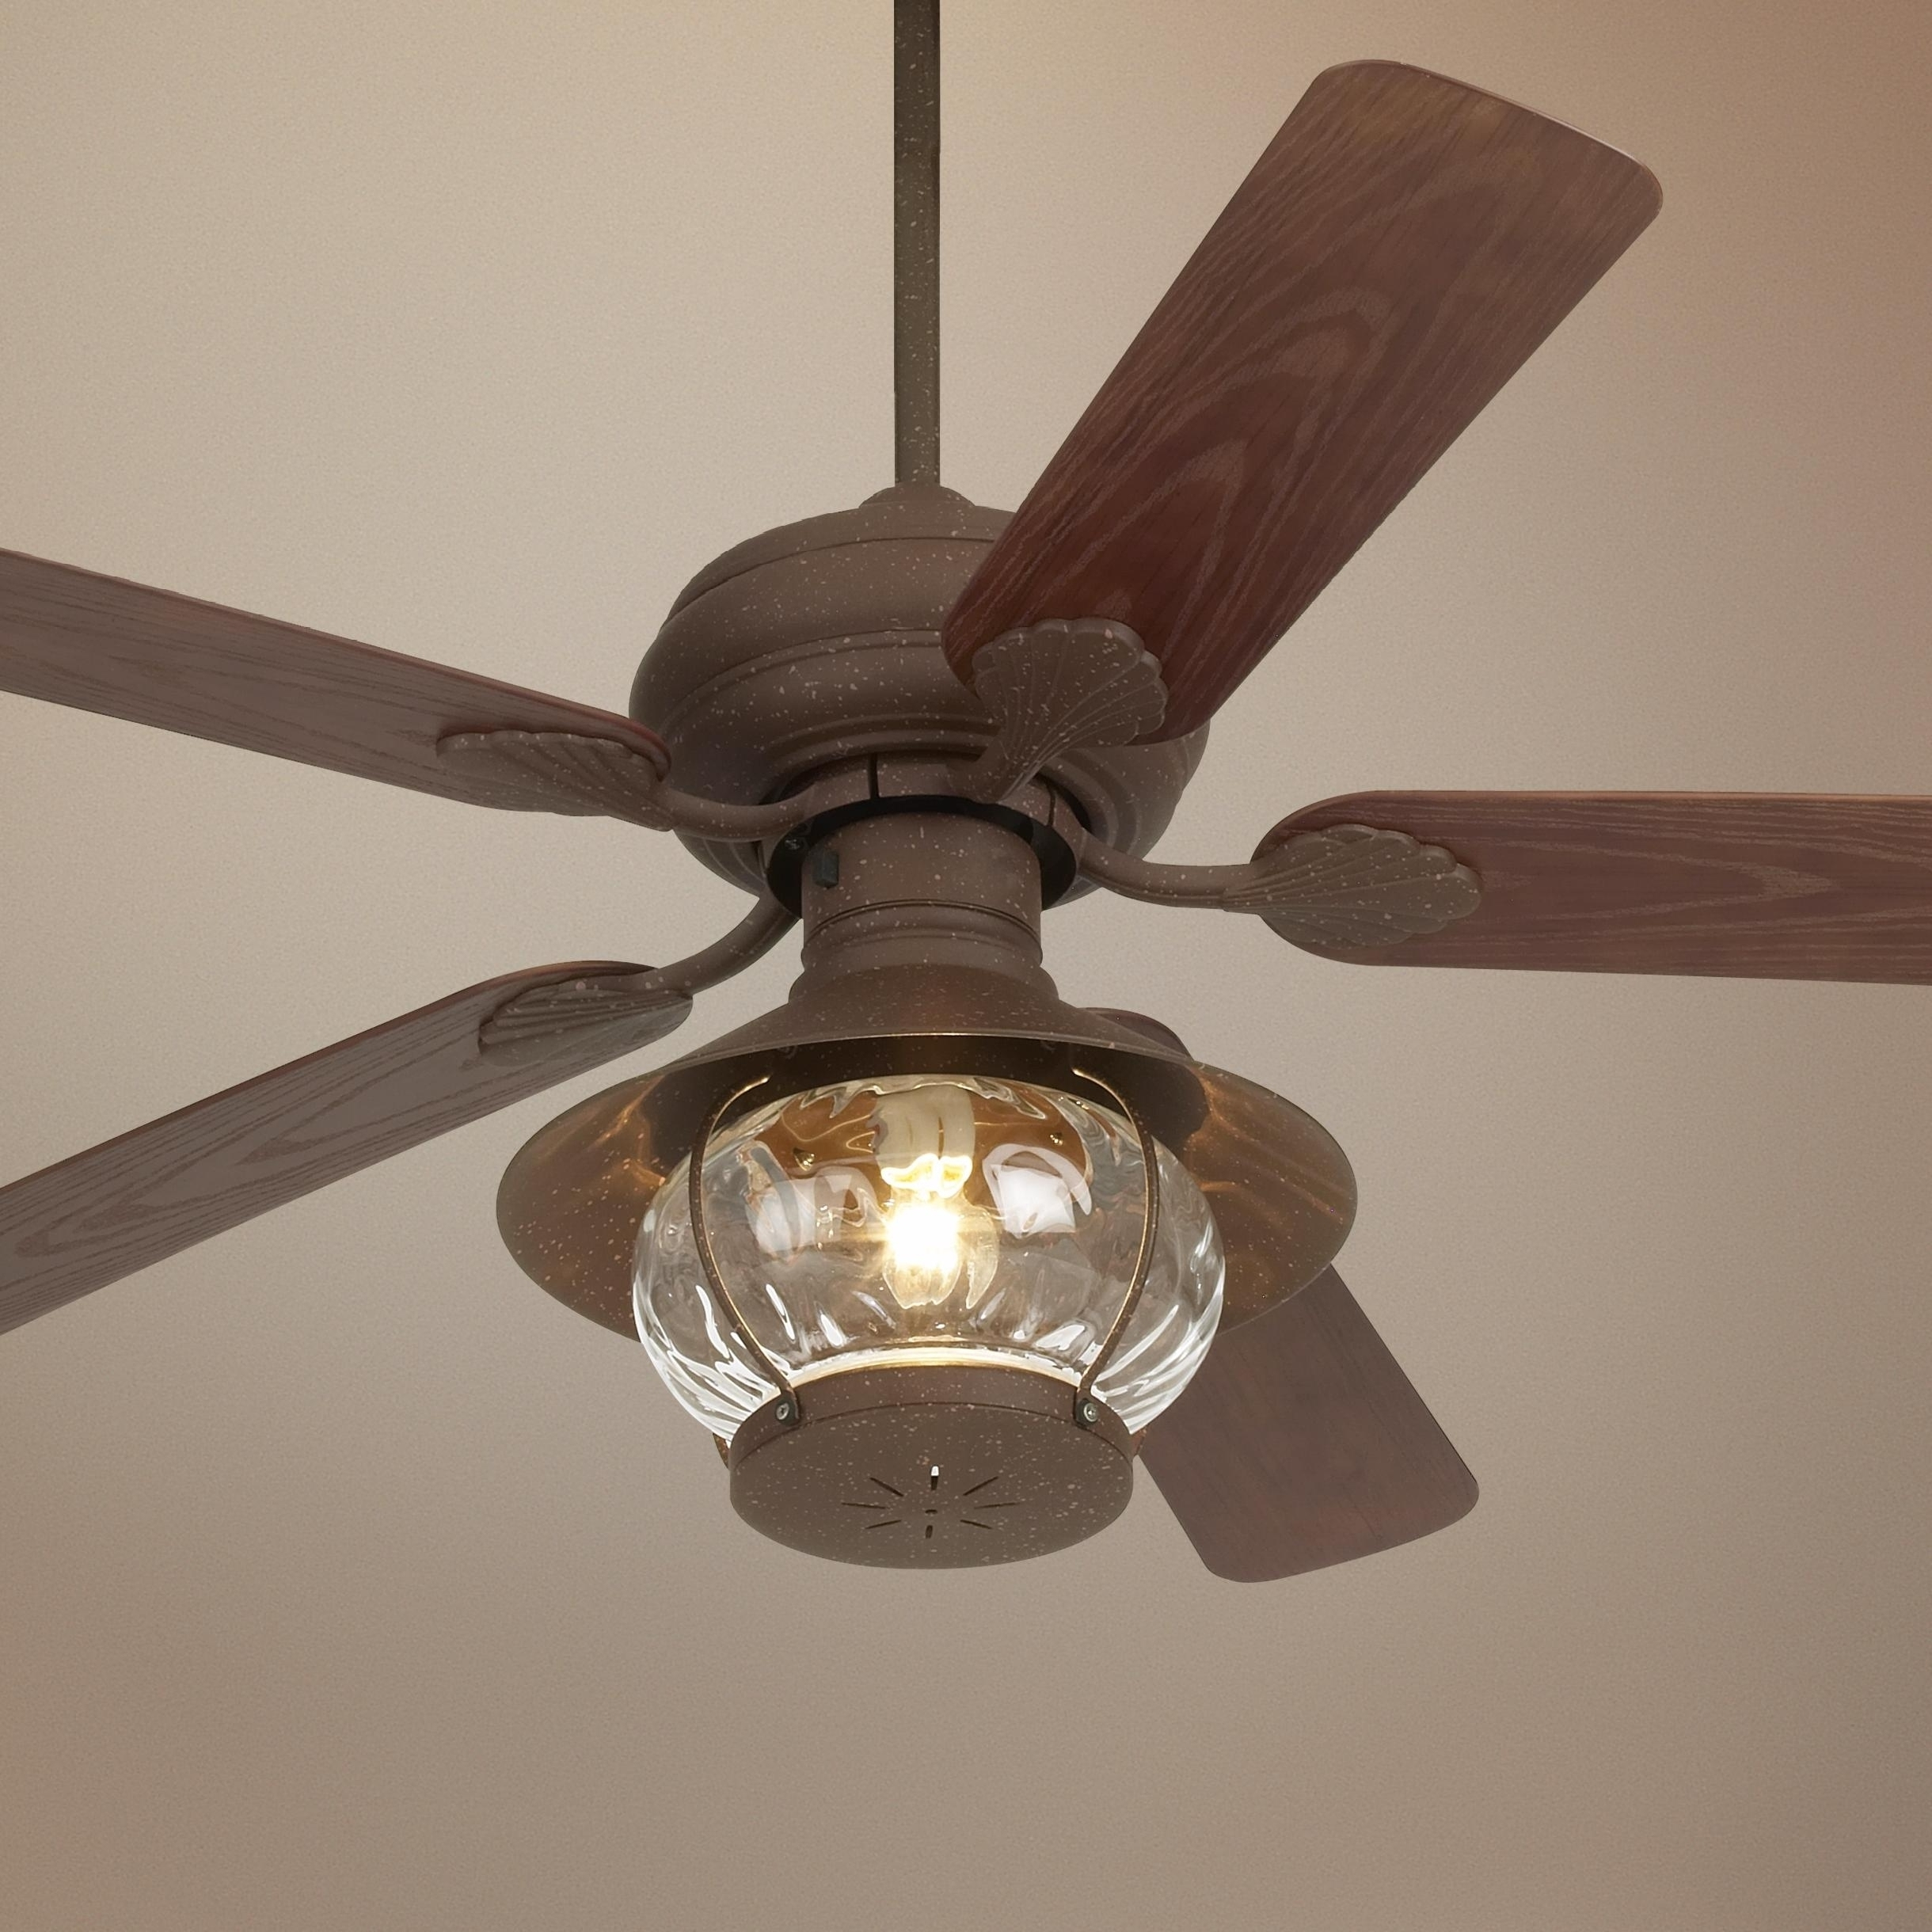 Ceiling: Awesome Rustic Outdoor Ceiling Fans Rustic Ceiling Fans For Preferred Outdoor Ceiling Fans With Lantern (View 3 of 20)